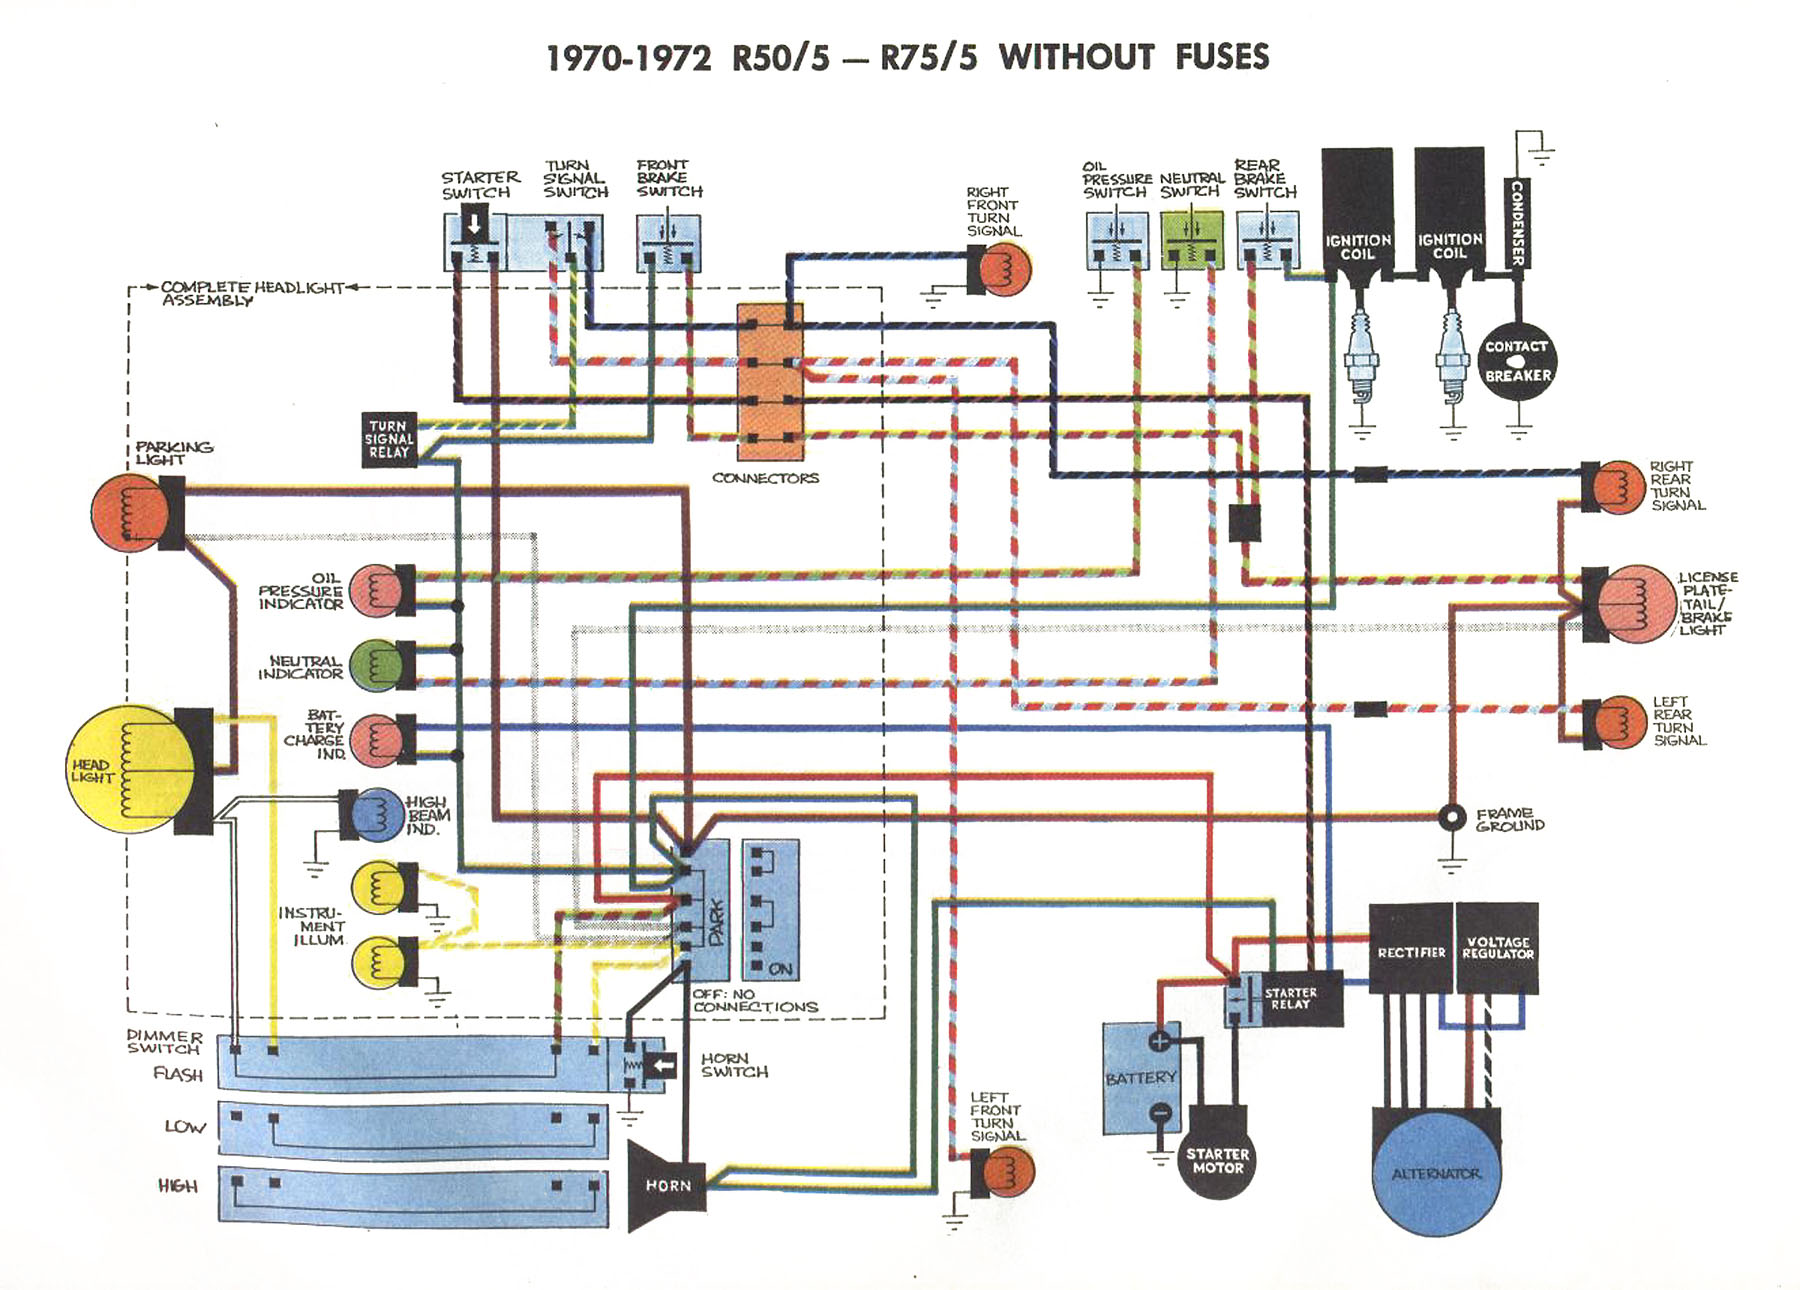 (without fuses) schematic